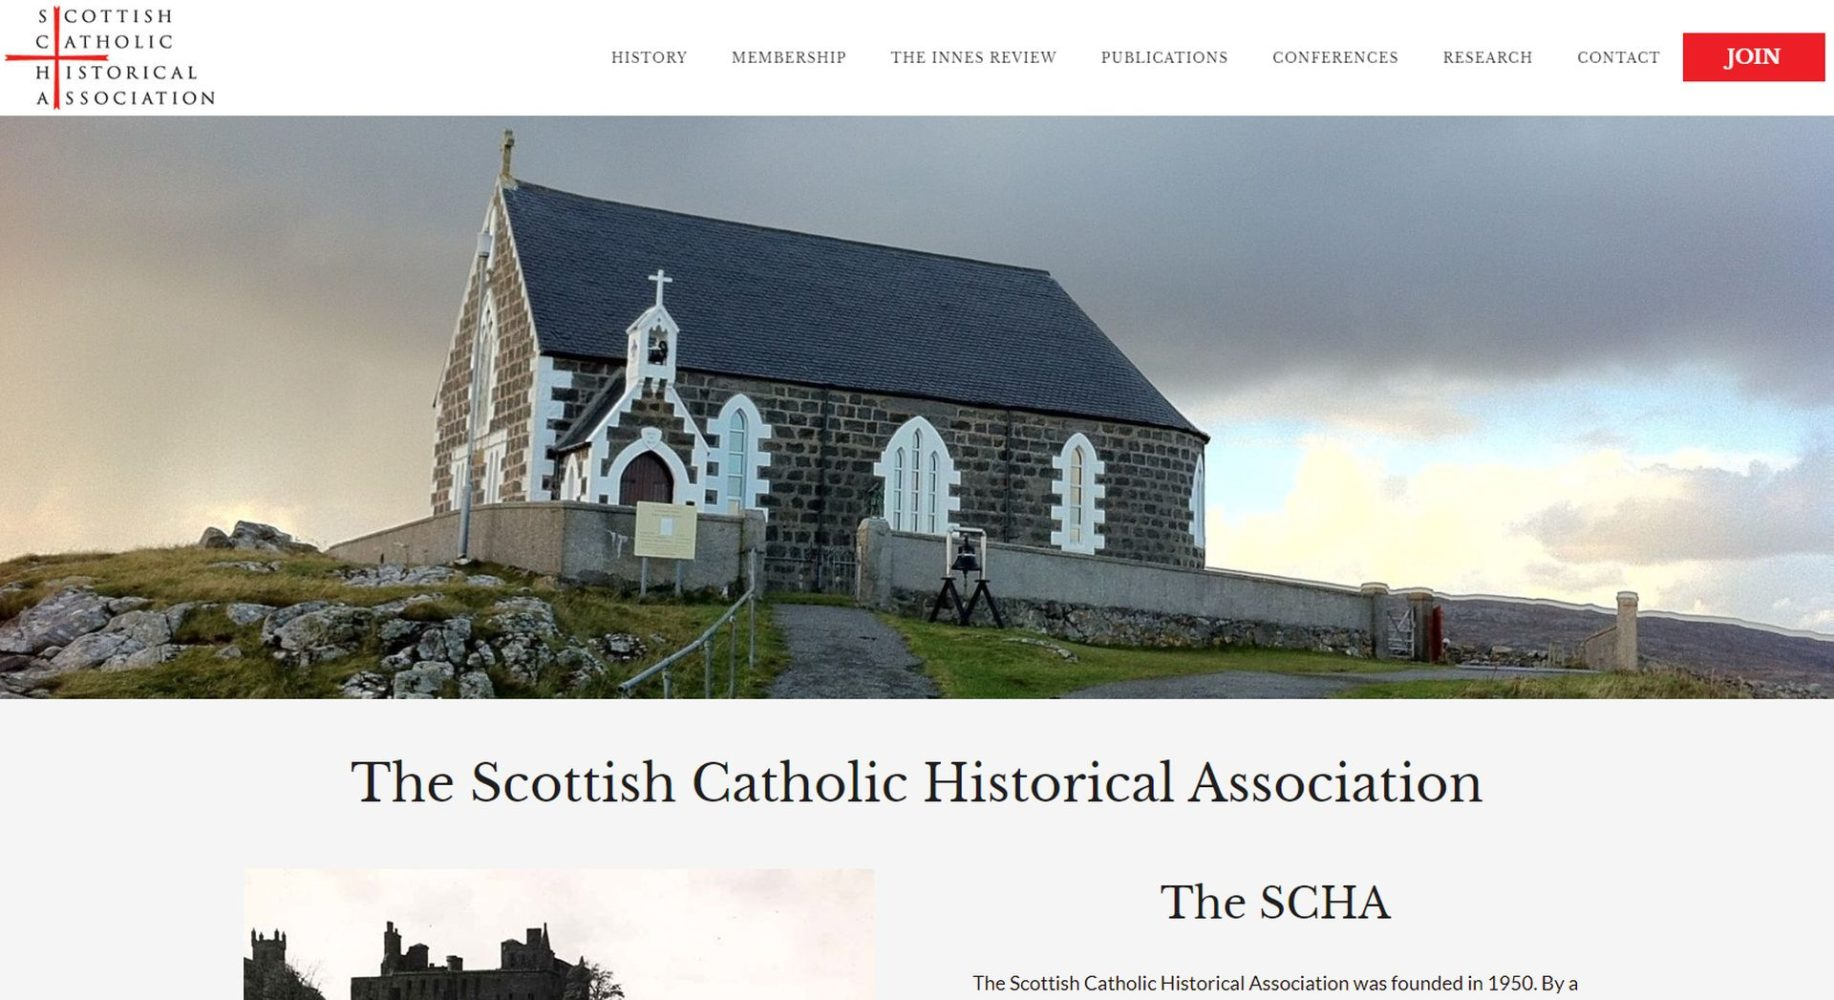 Scottish Catholic Historical Association Website Design Homepage